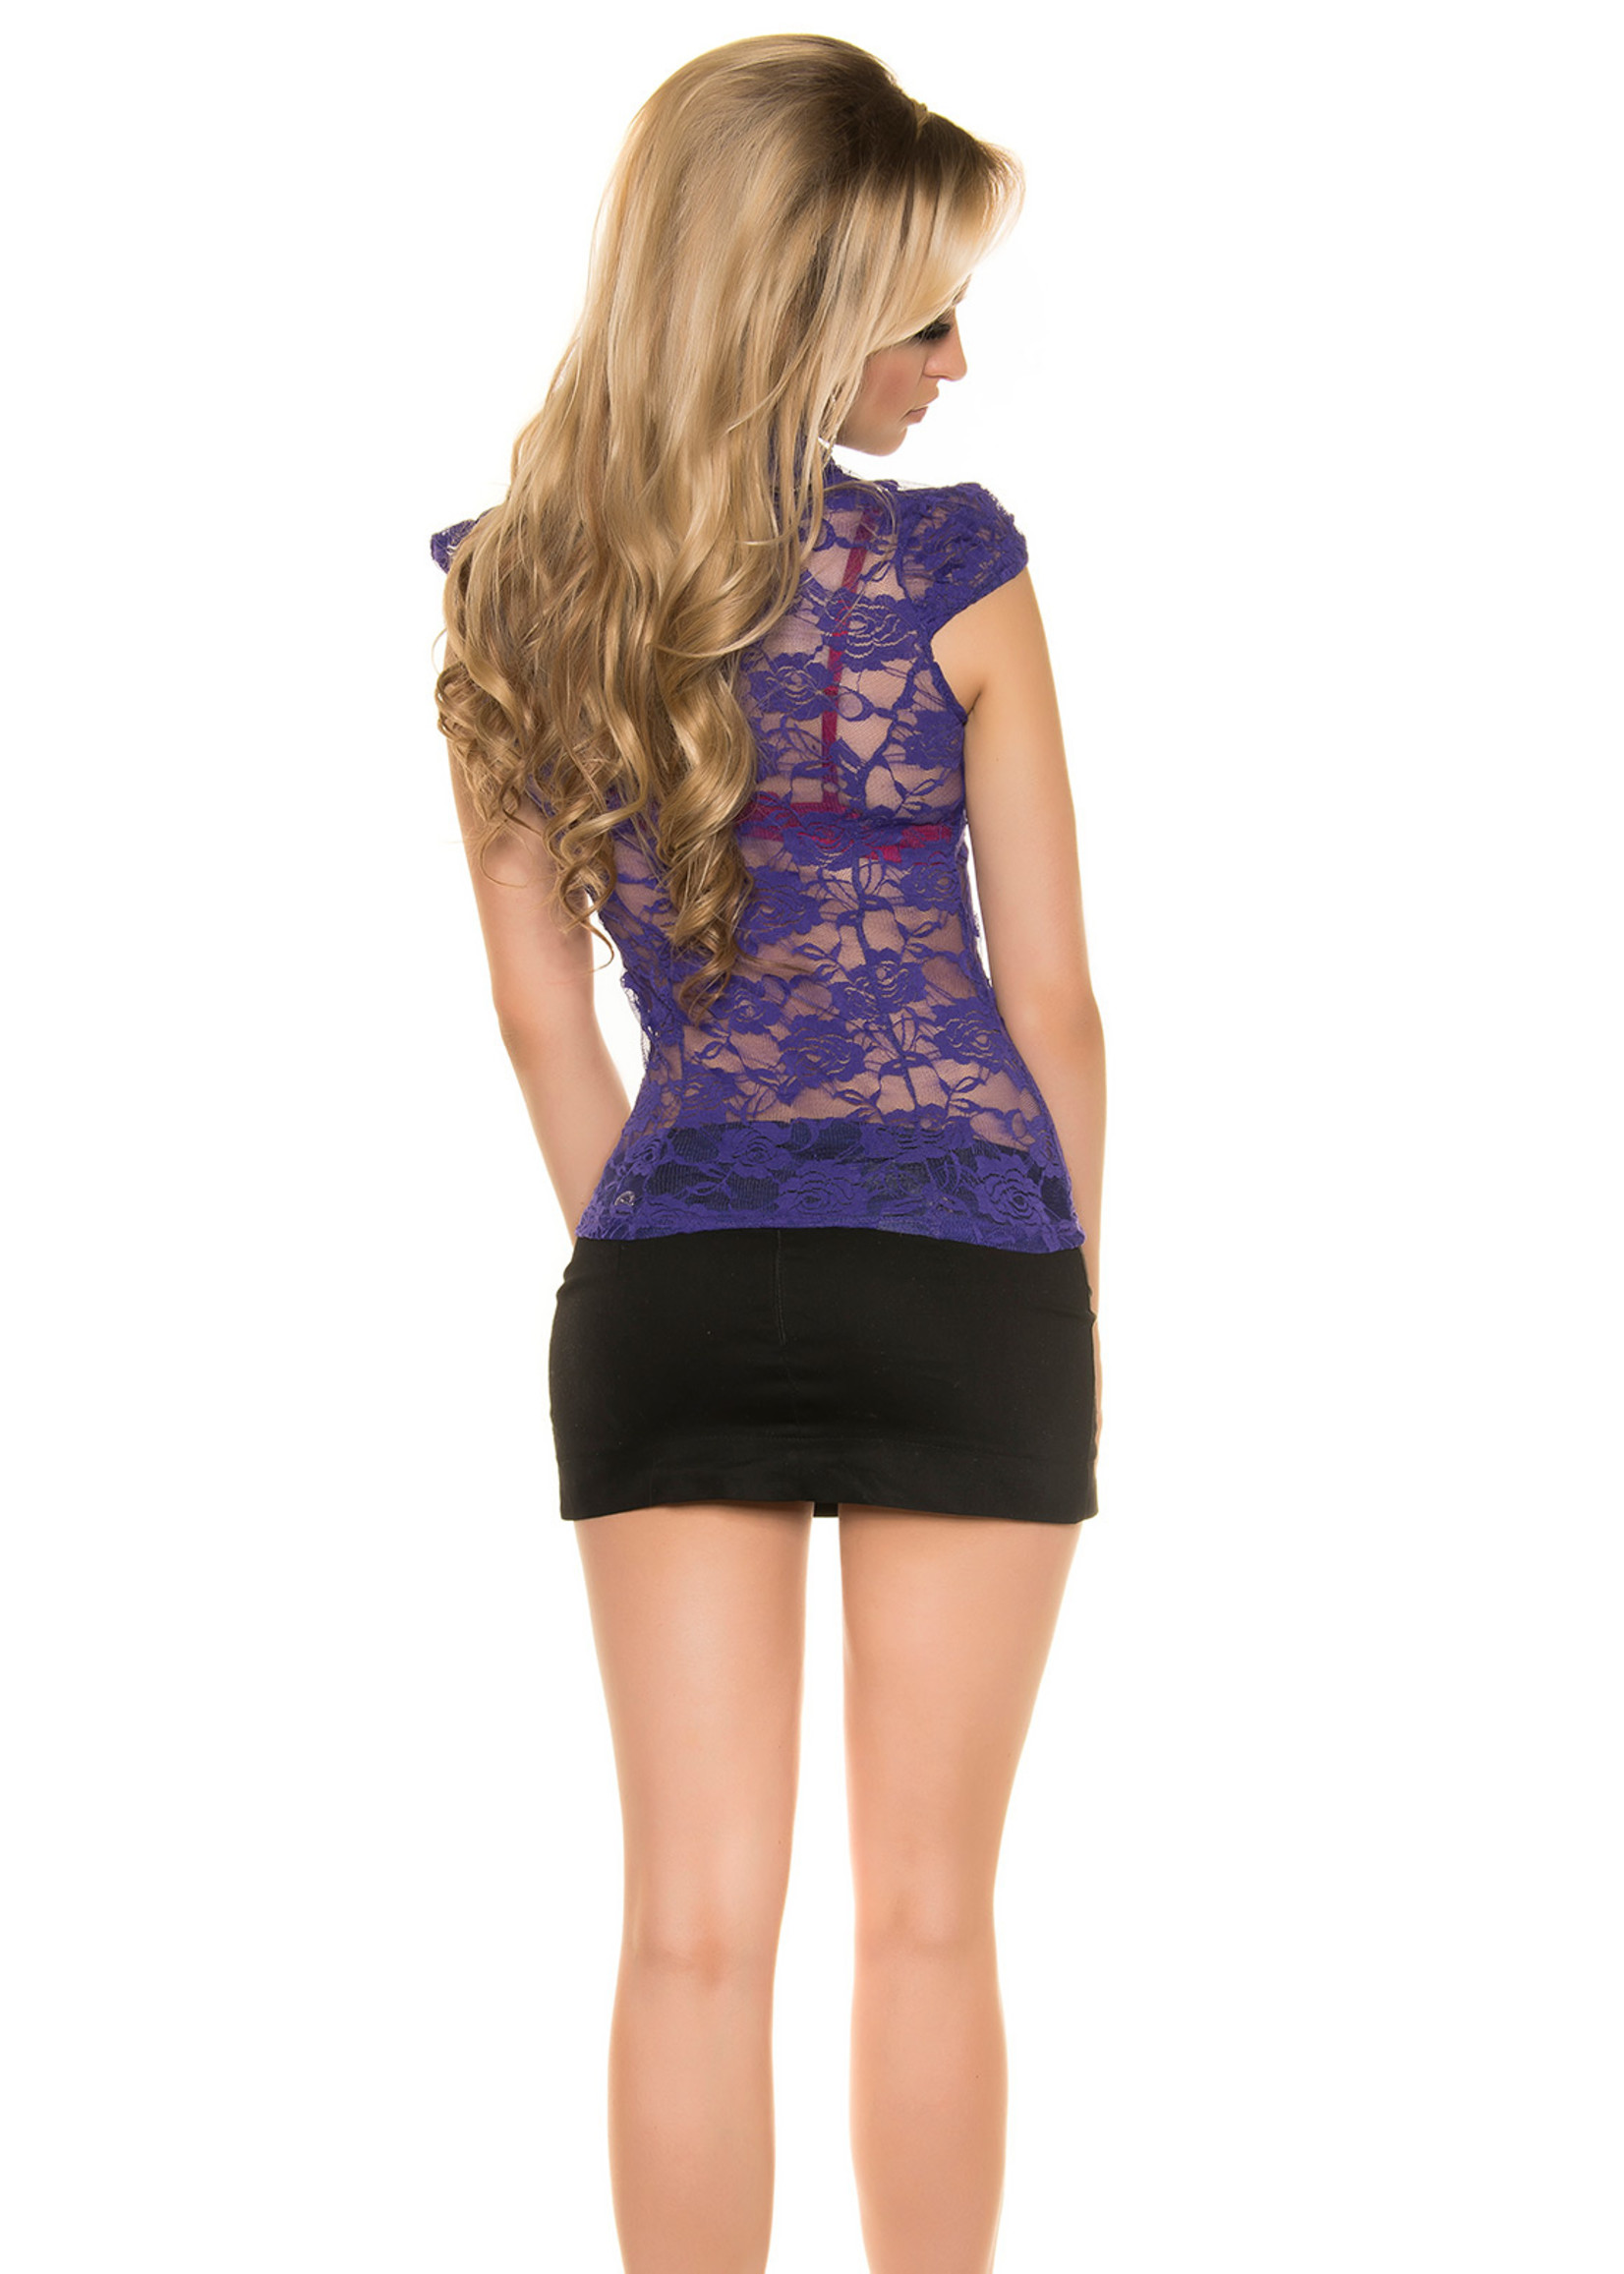 IN-STYLE FASHION PAARSE KANTEN BLOUSE MET STRASS